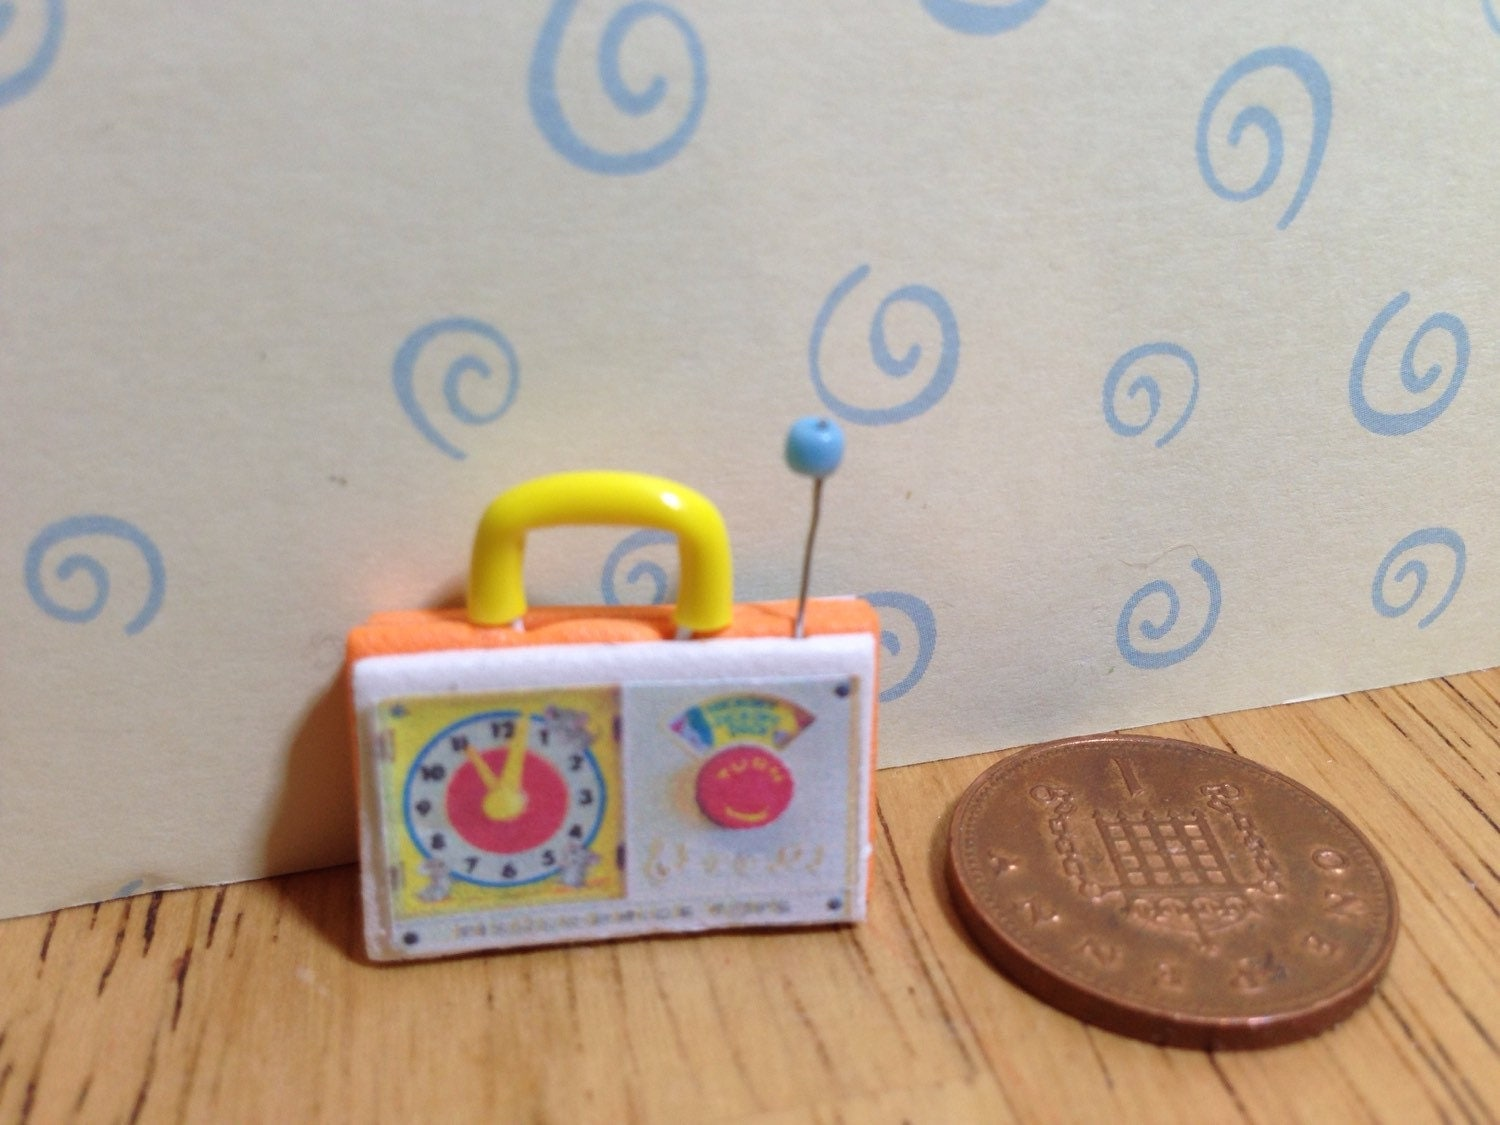 Hand made Dolls house Miniature replica vintage fisher price musical clock radio 112 scale